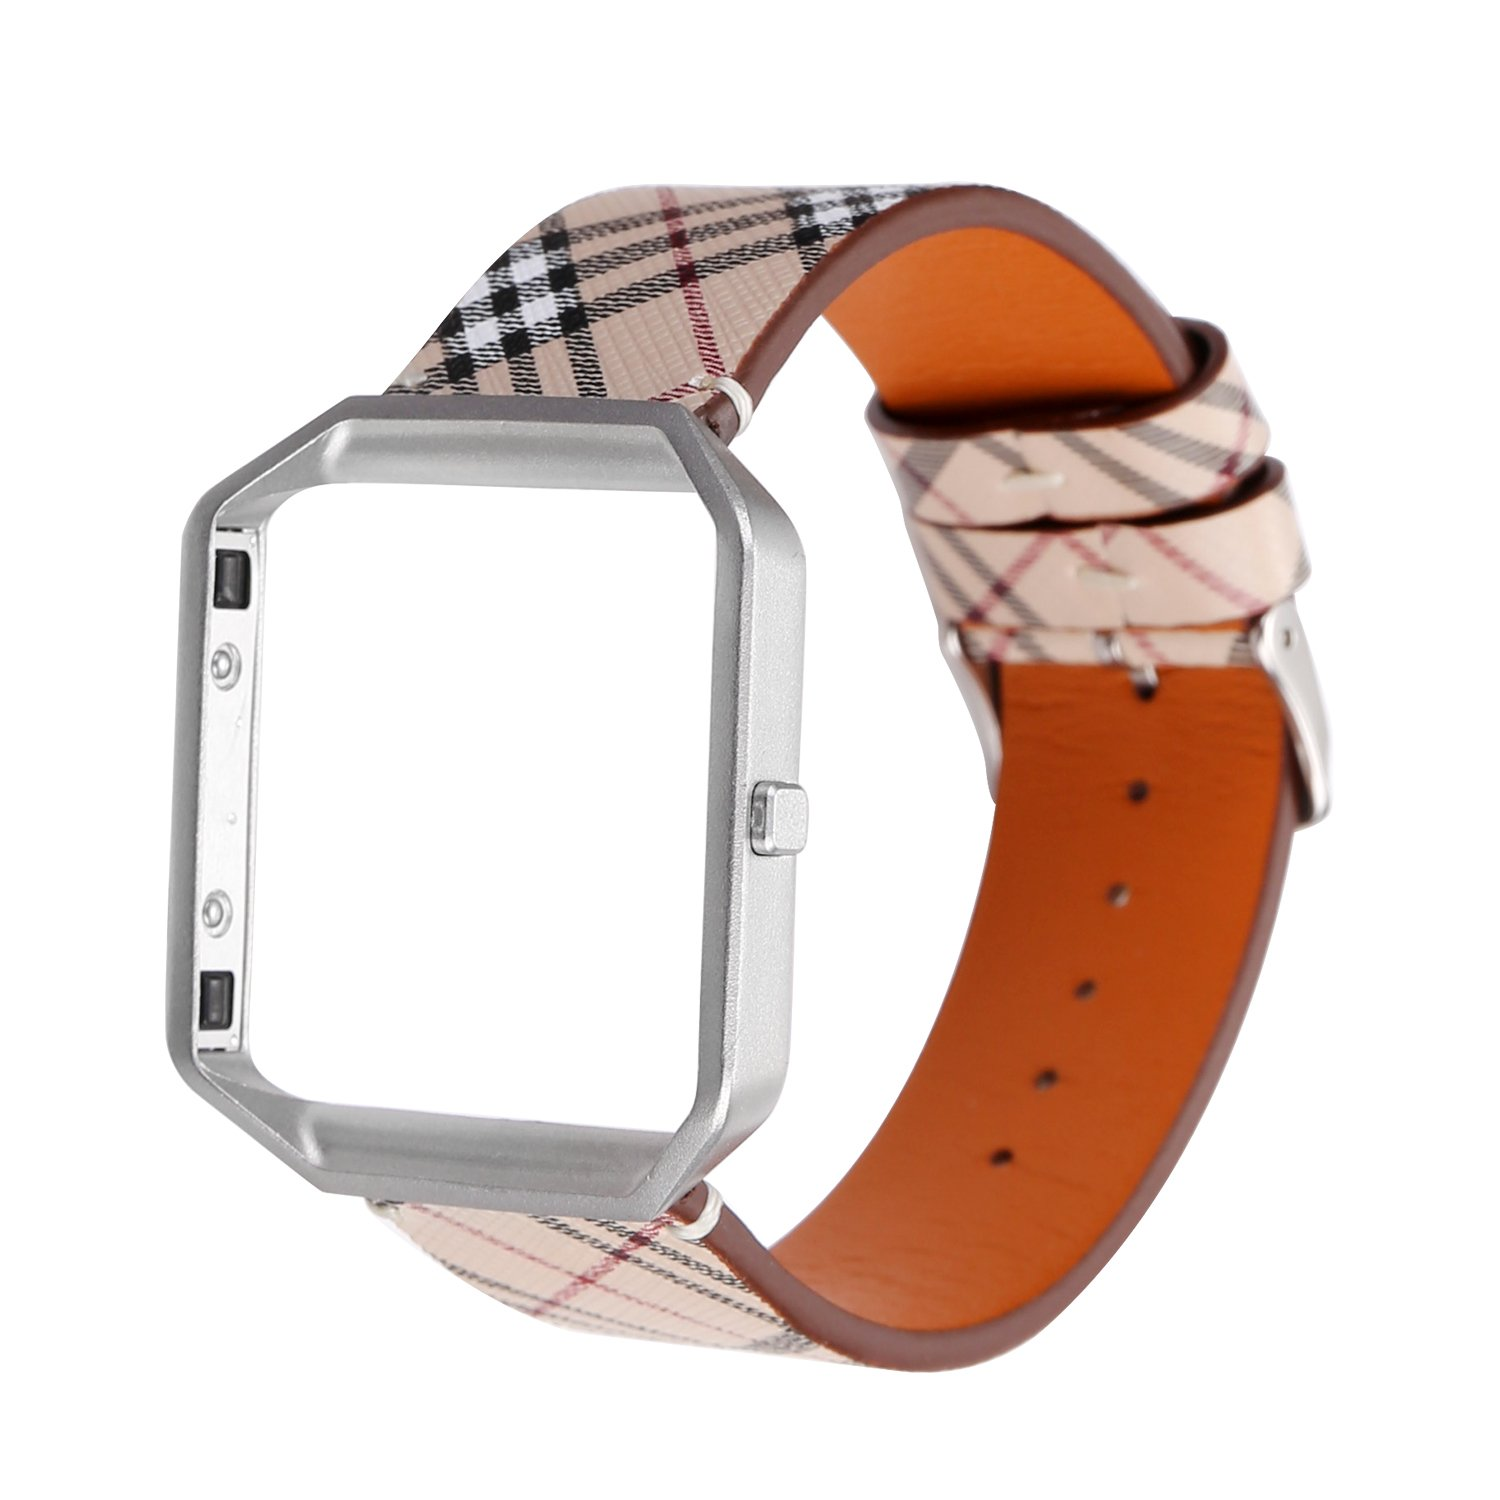 MeShow TCSHOW Soft PU Leather Plaid Tartan Style Replacement Strap Wrist Band Metal Adapter Compatible Fitbit Blaze (A)